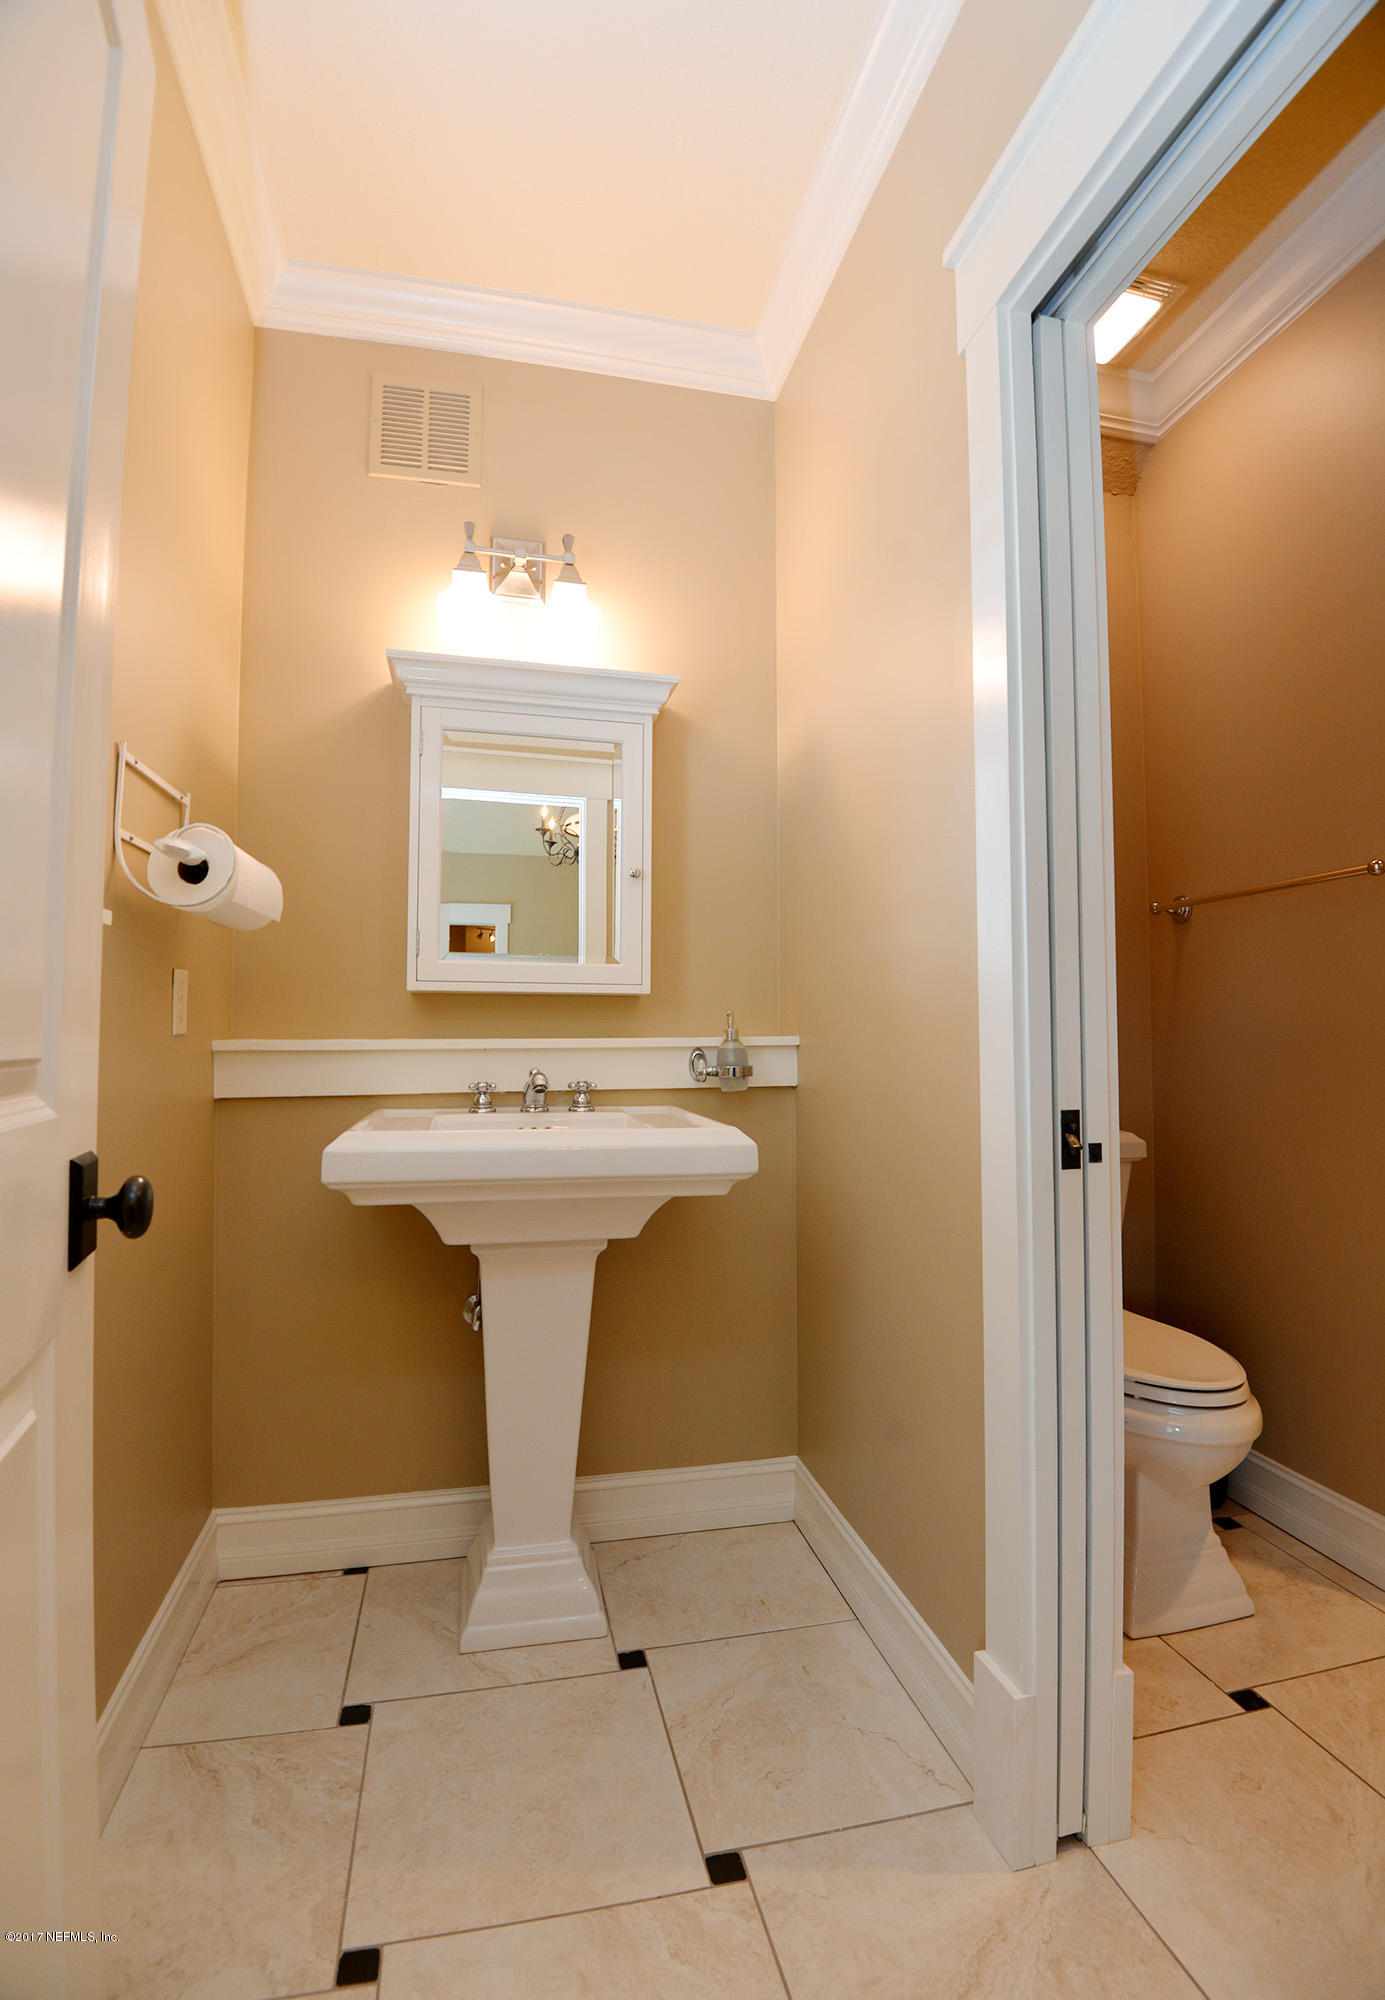 4421 CATHEYS CLUB, JACKSONVILLE, FLORIDA 32224, 6 Bedrooms Bedrooms, ,5 BathroomsBathrooms,Residential - single family,For sale,CATHEYS CLUB,906258